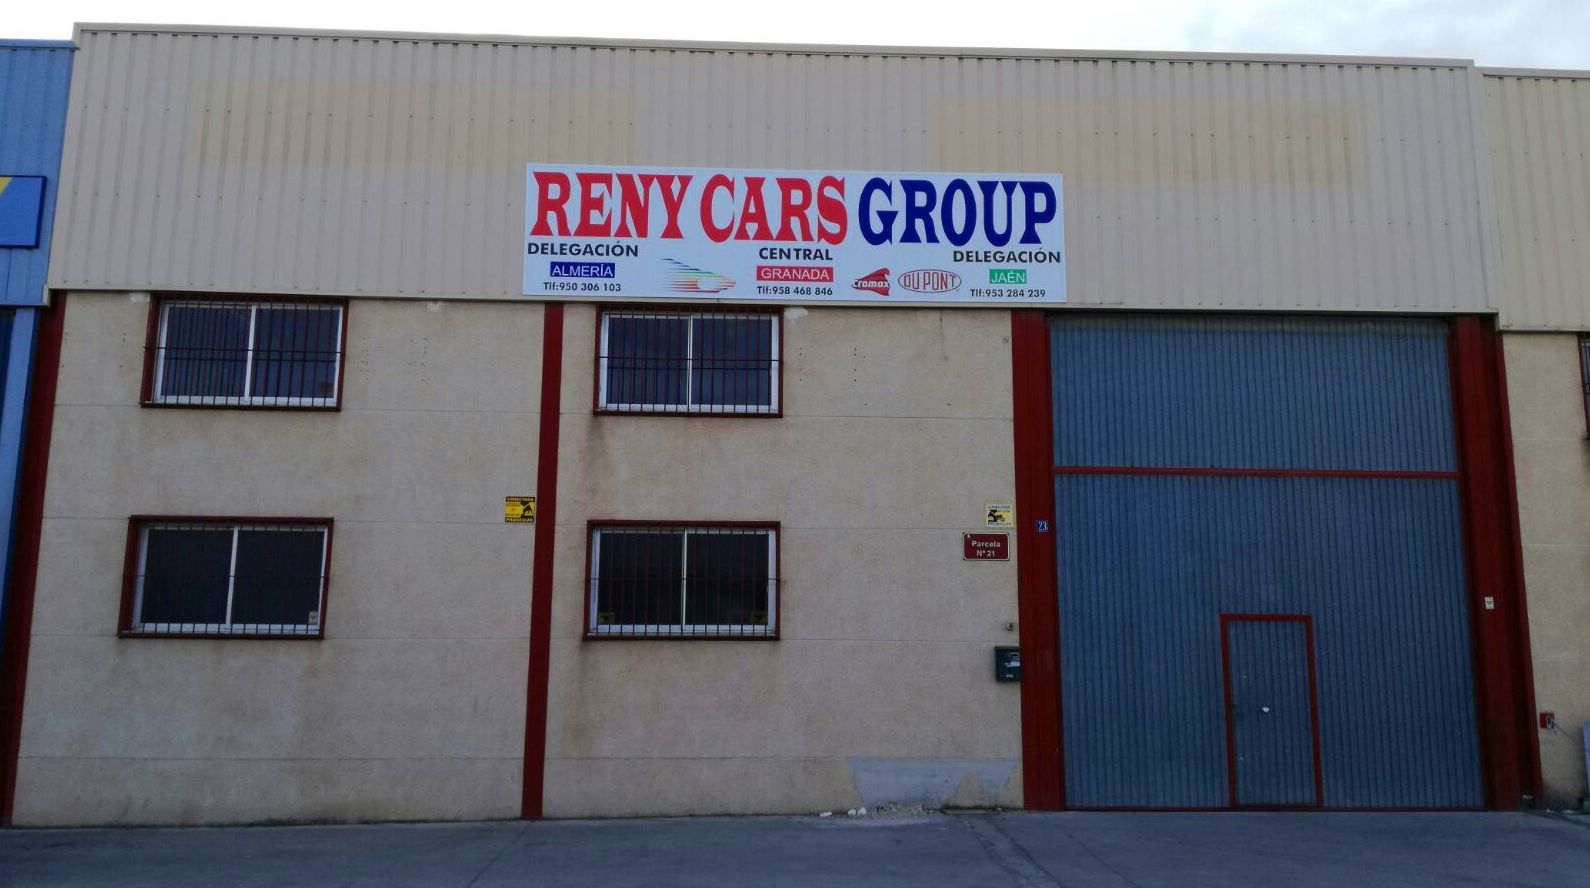 RENY CARS GROUUP